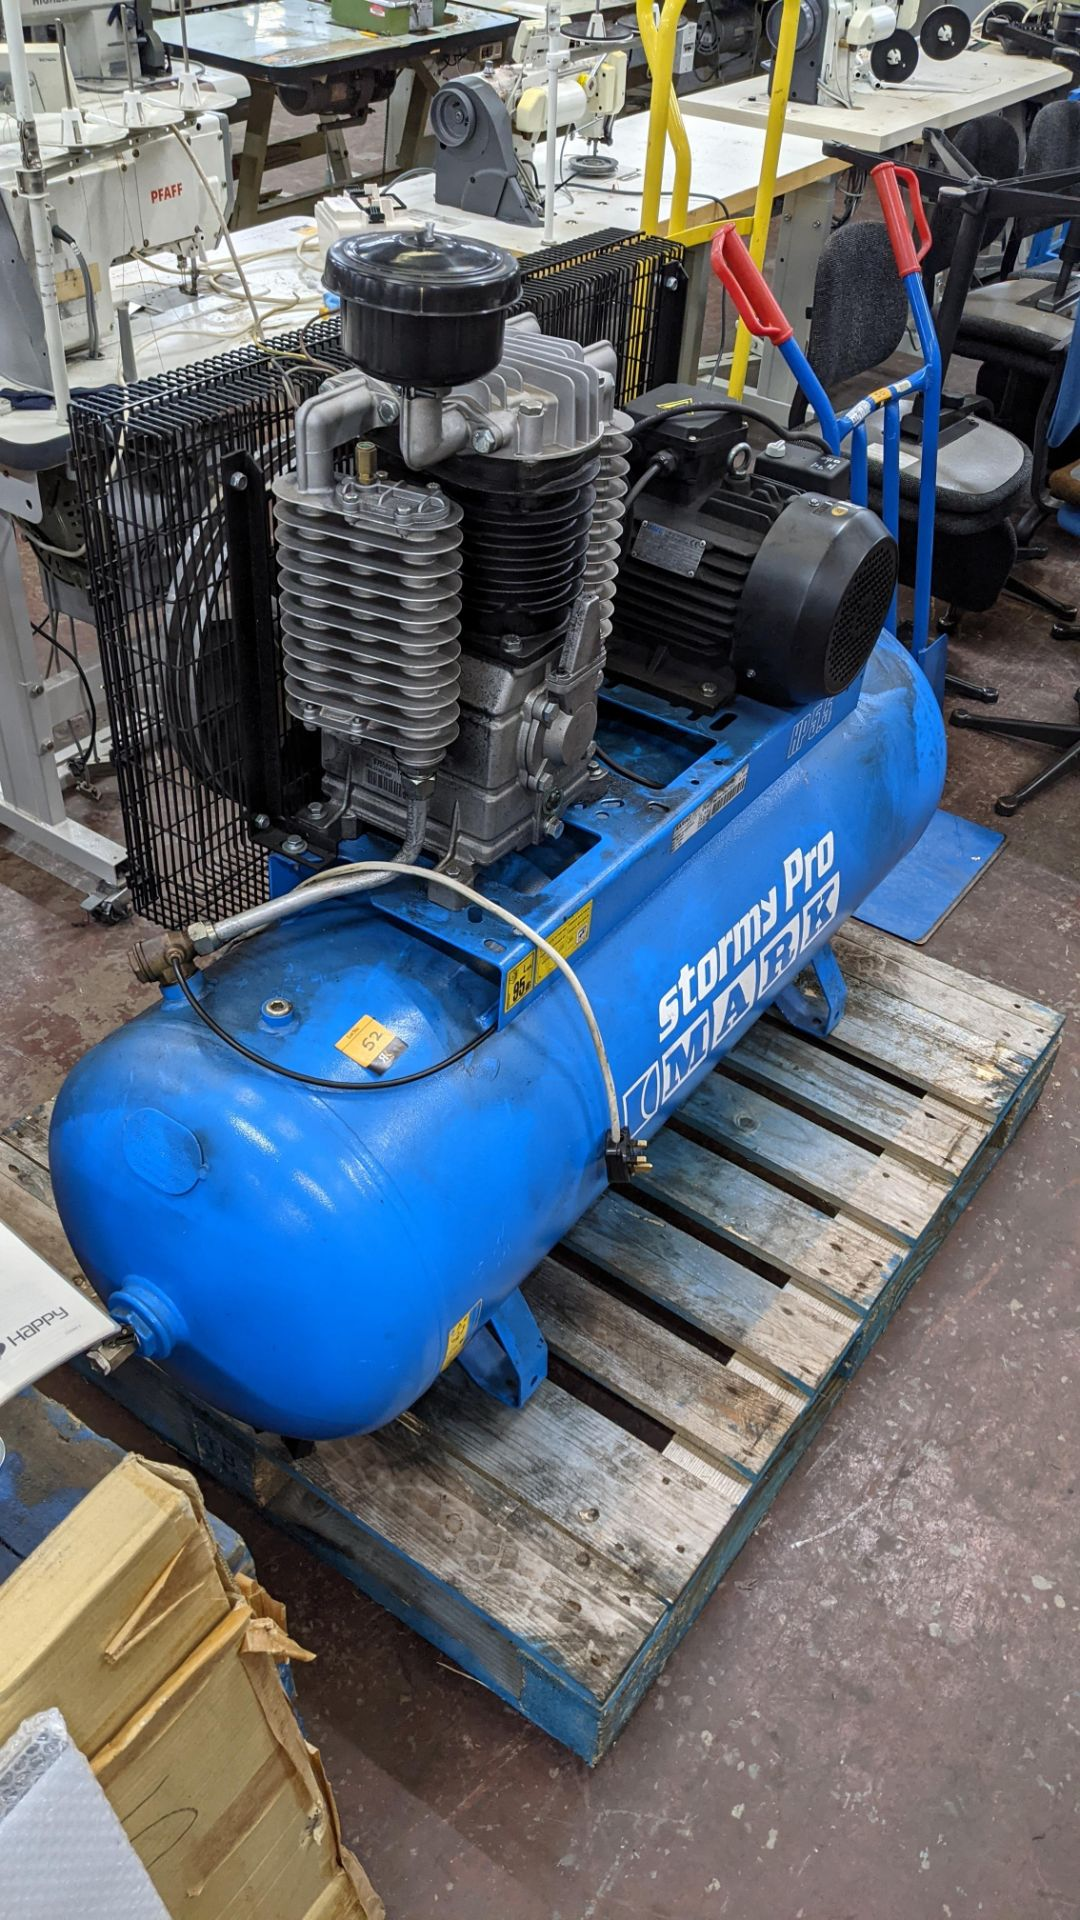 Mark Stormy Pro all-in-one compressor comprising horizontal welded air receiver with compressor equi - Image 9 of 17